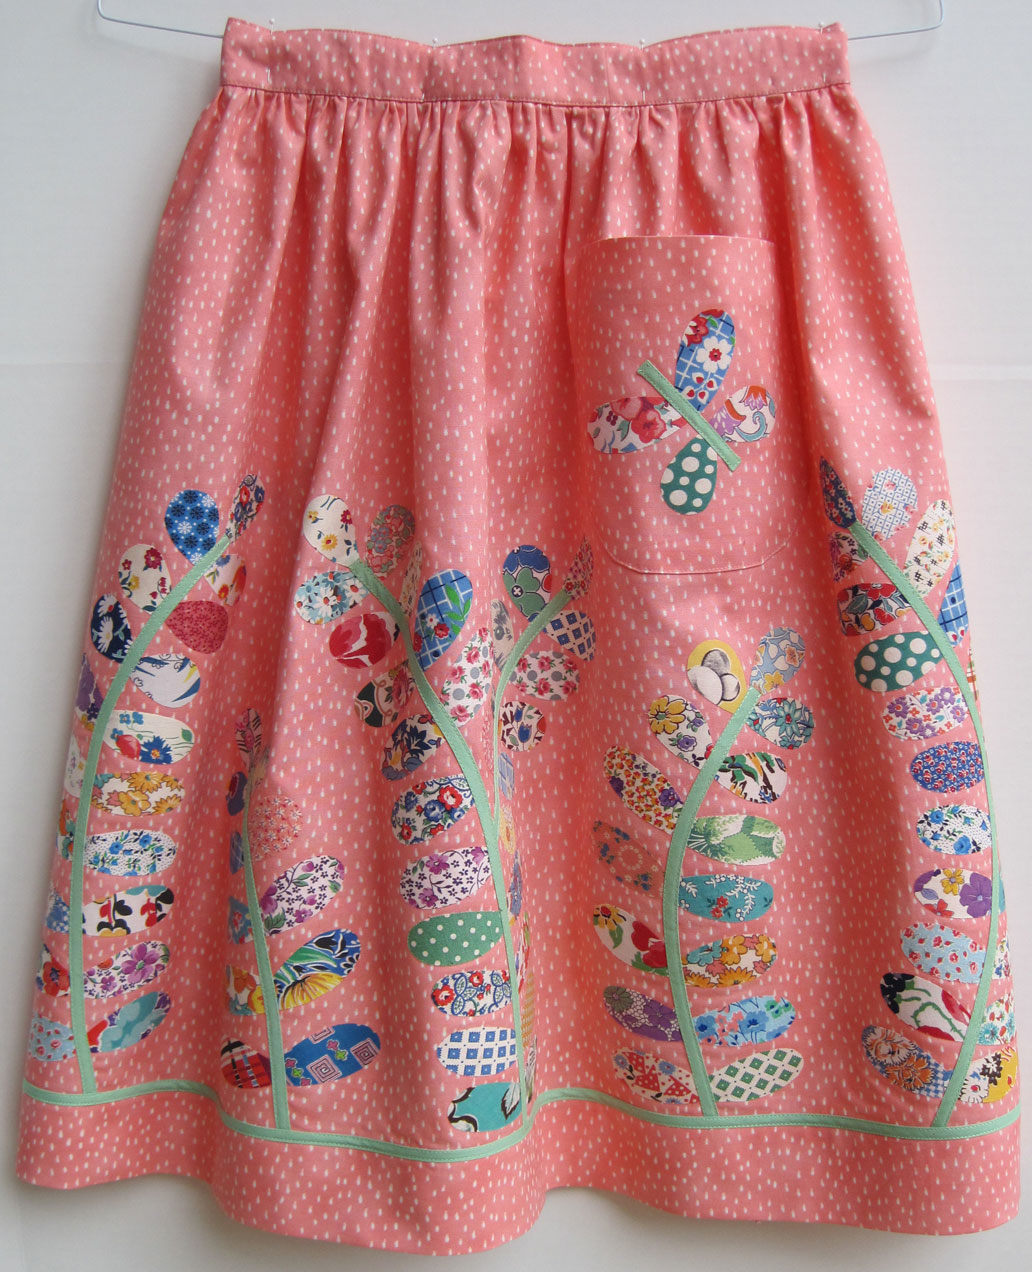 Vintage-Inspired-Apron-17a